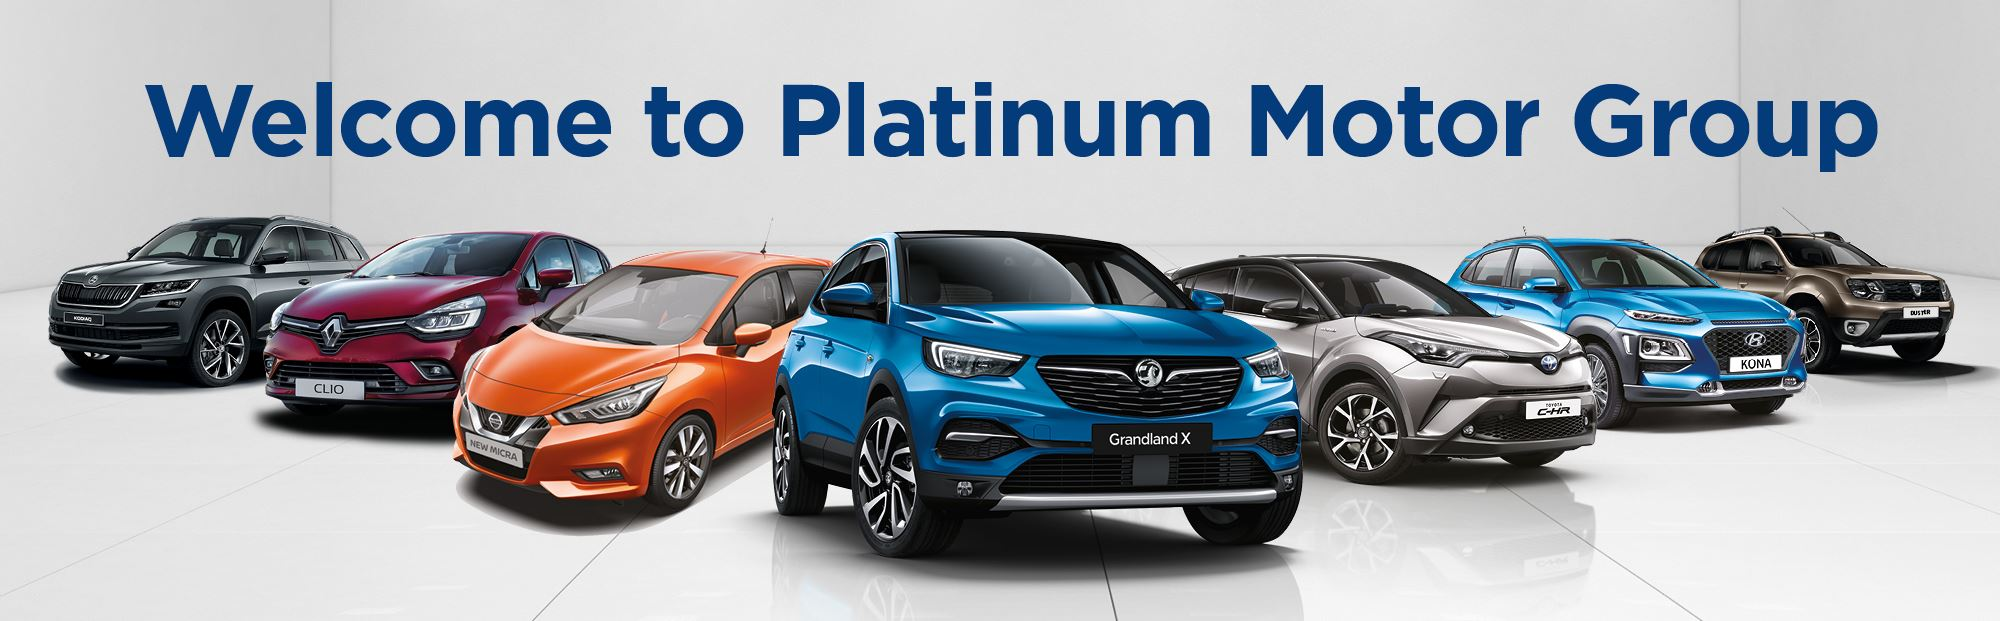 Welcome to Platinum Motor Group